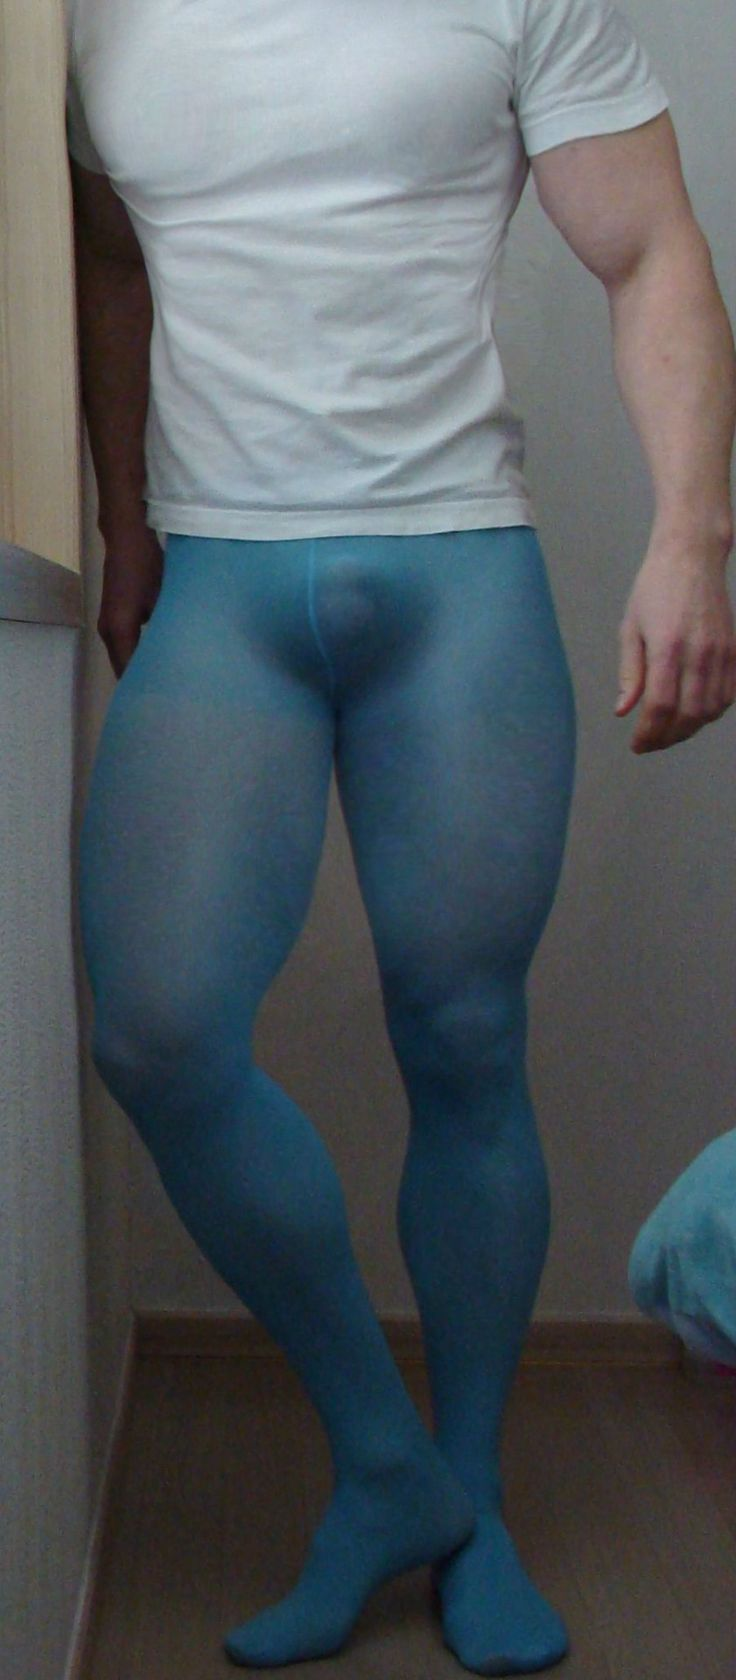 men wearing pantyhose photos